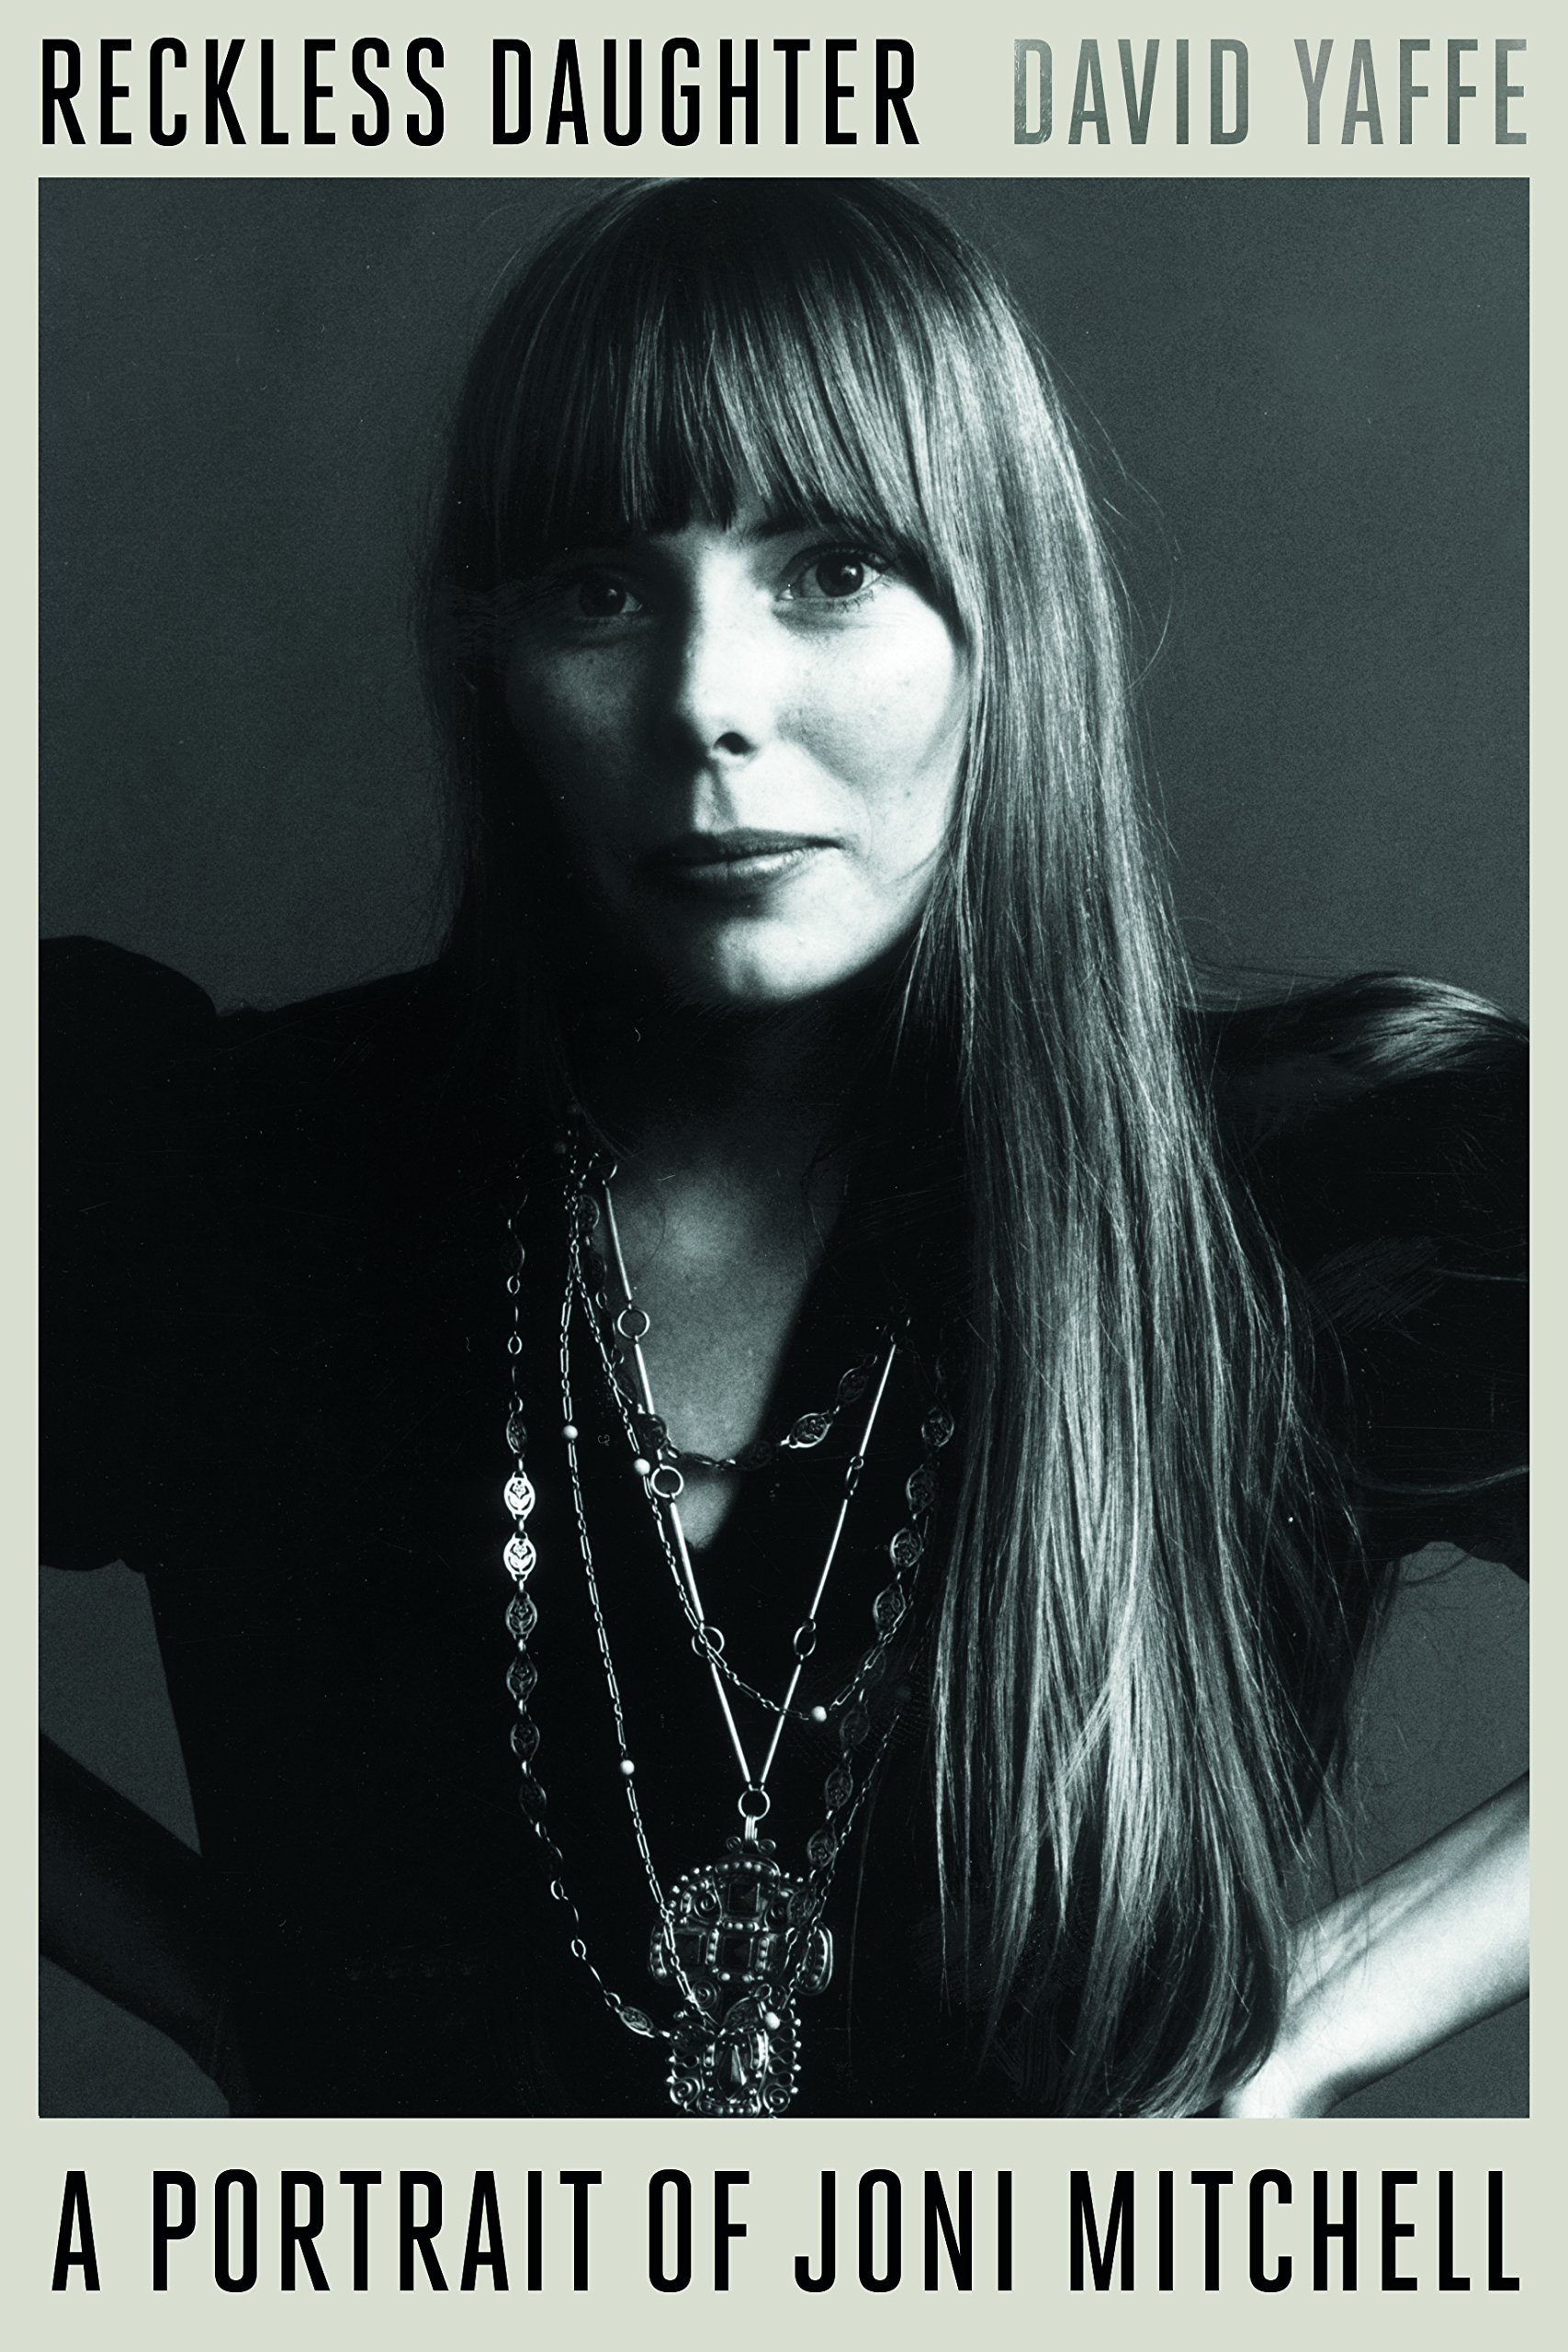 The cover of Reckless Daughter a Portrait of Joni Mitchell